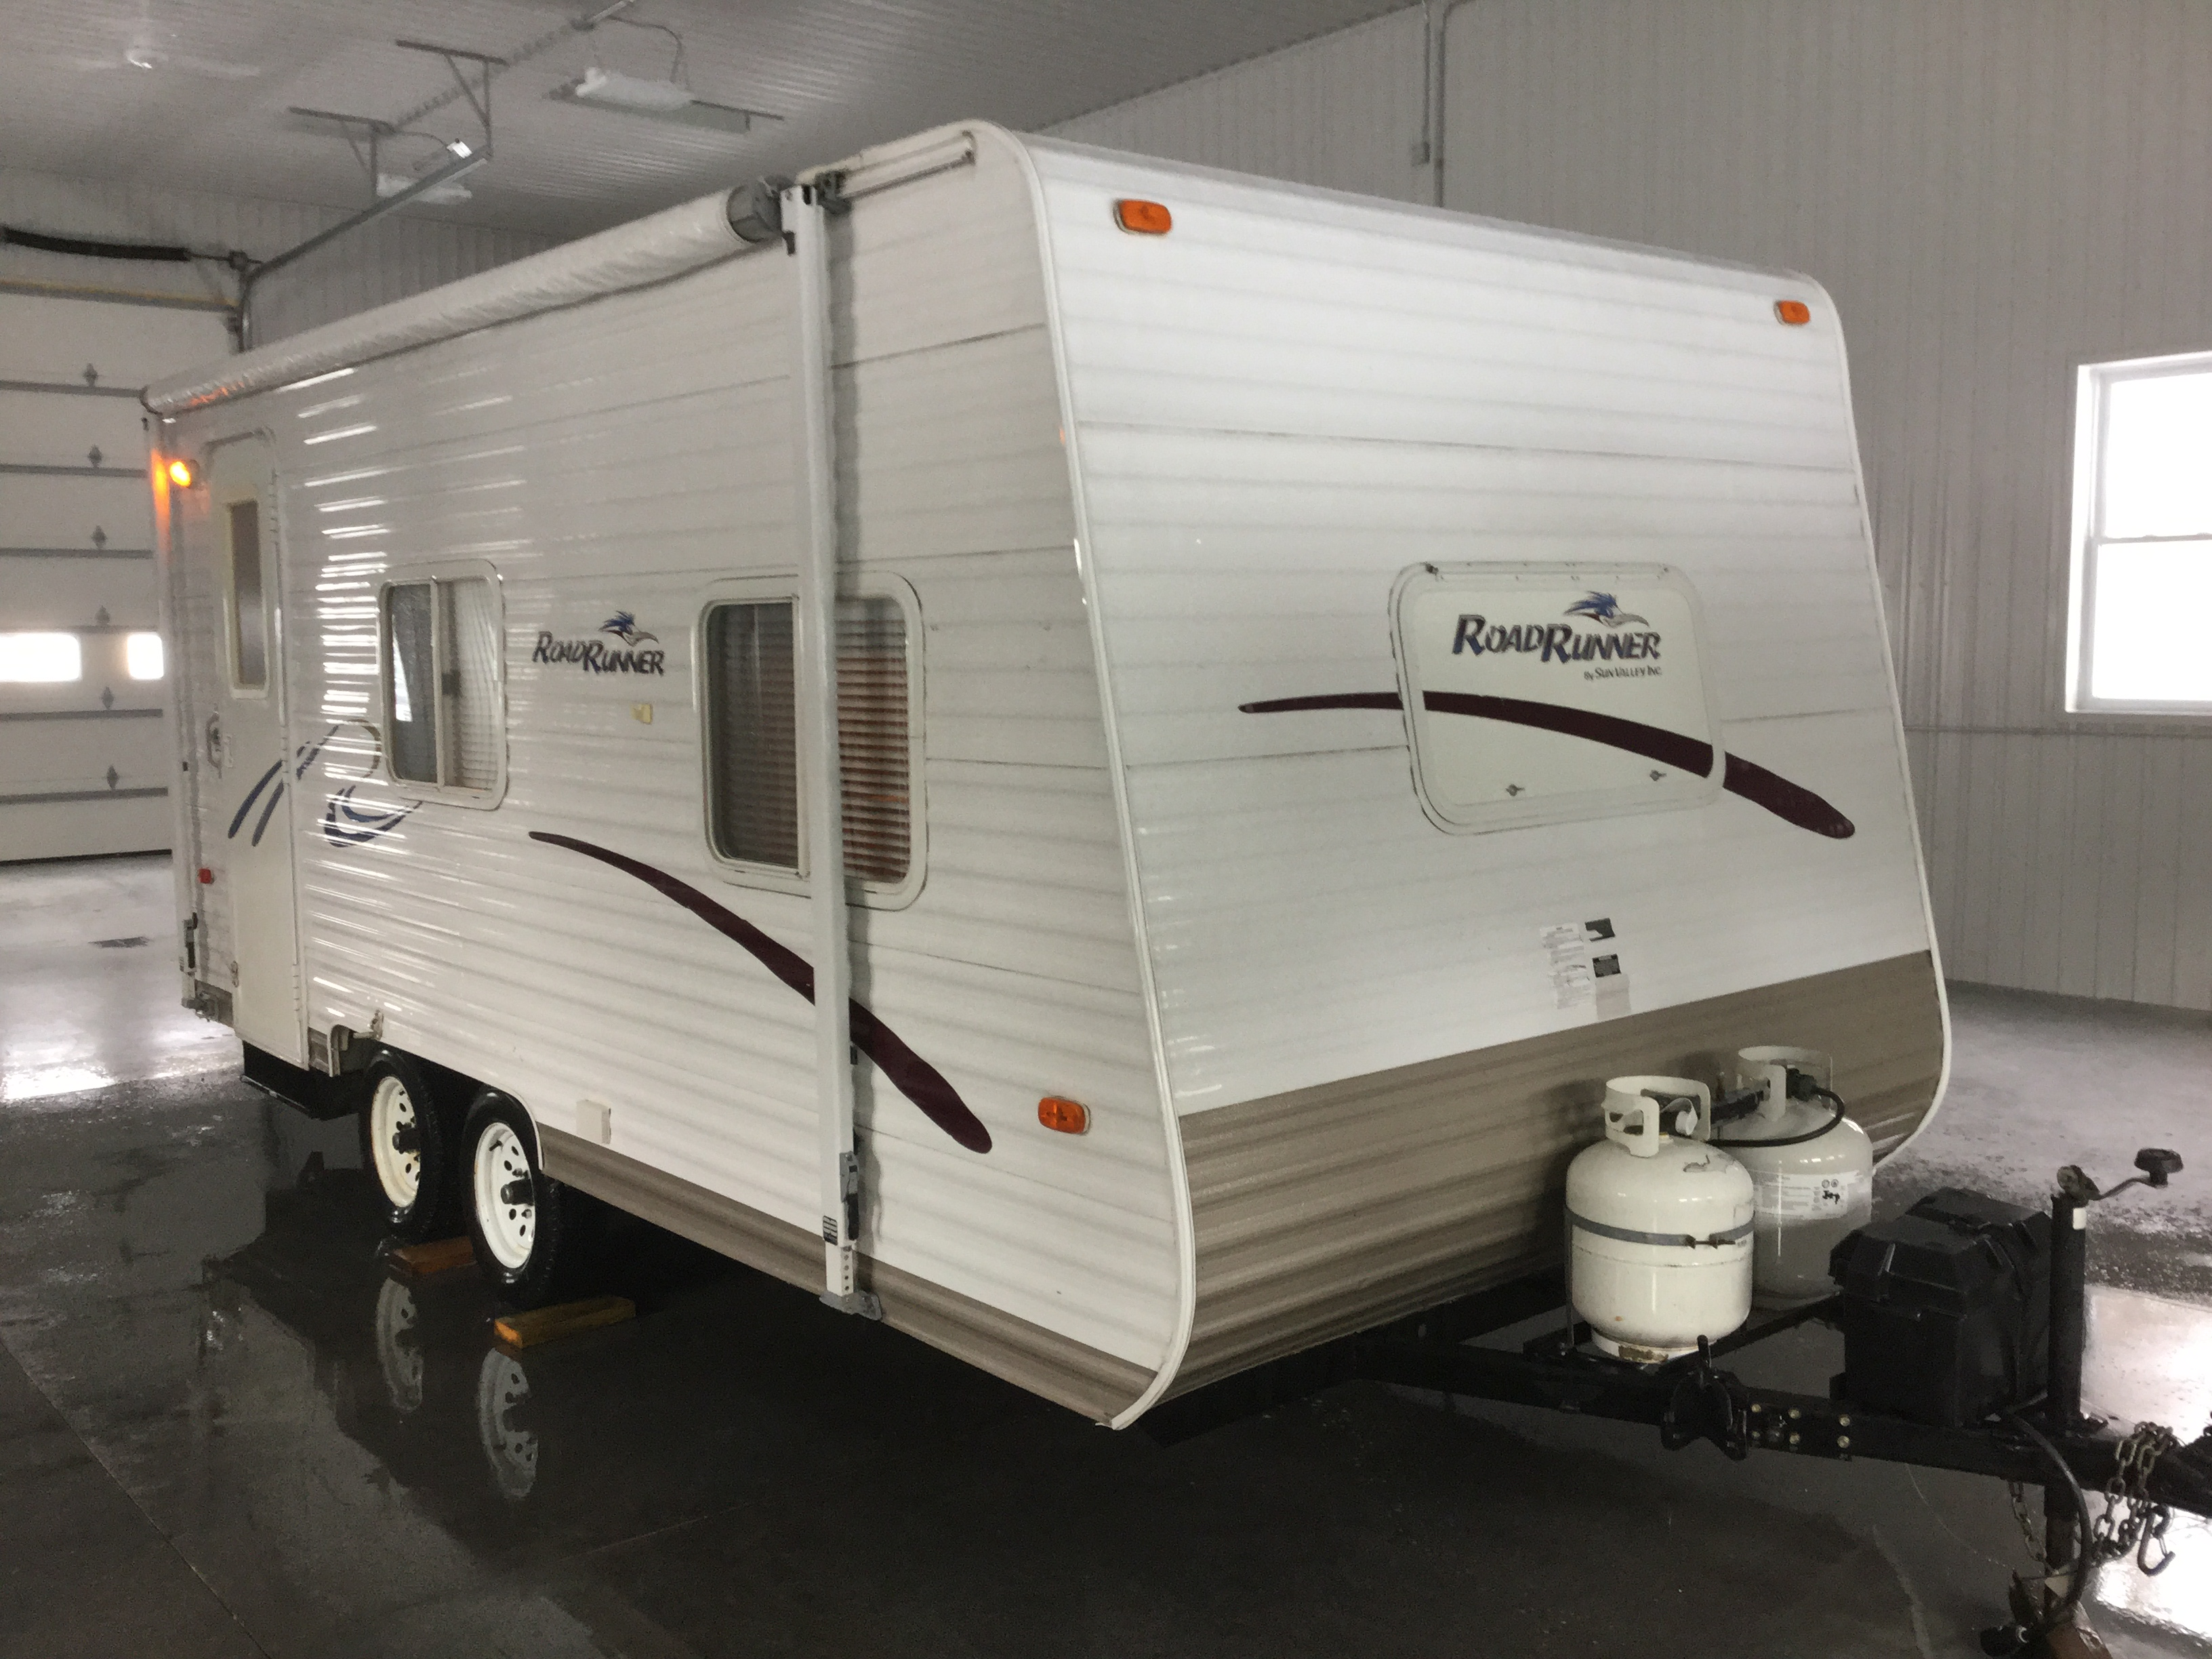 Extra clean 2003 Travel Trailer – sleeps 4  SOLD!!